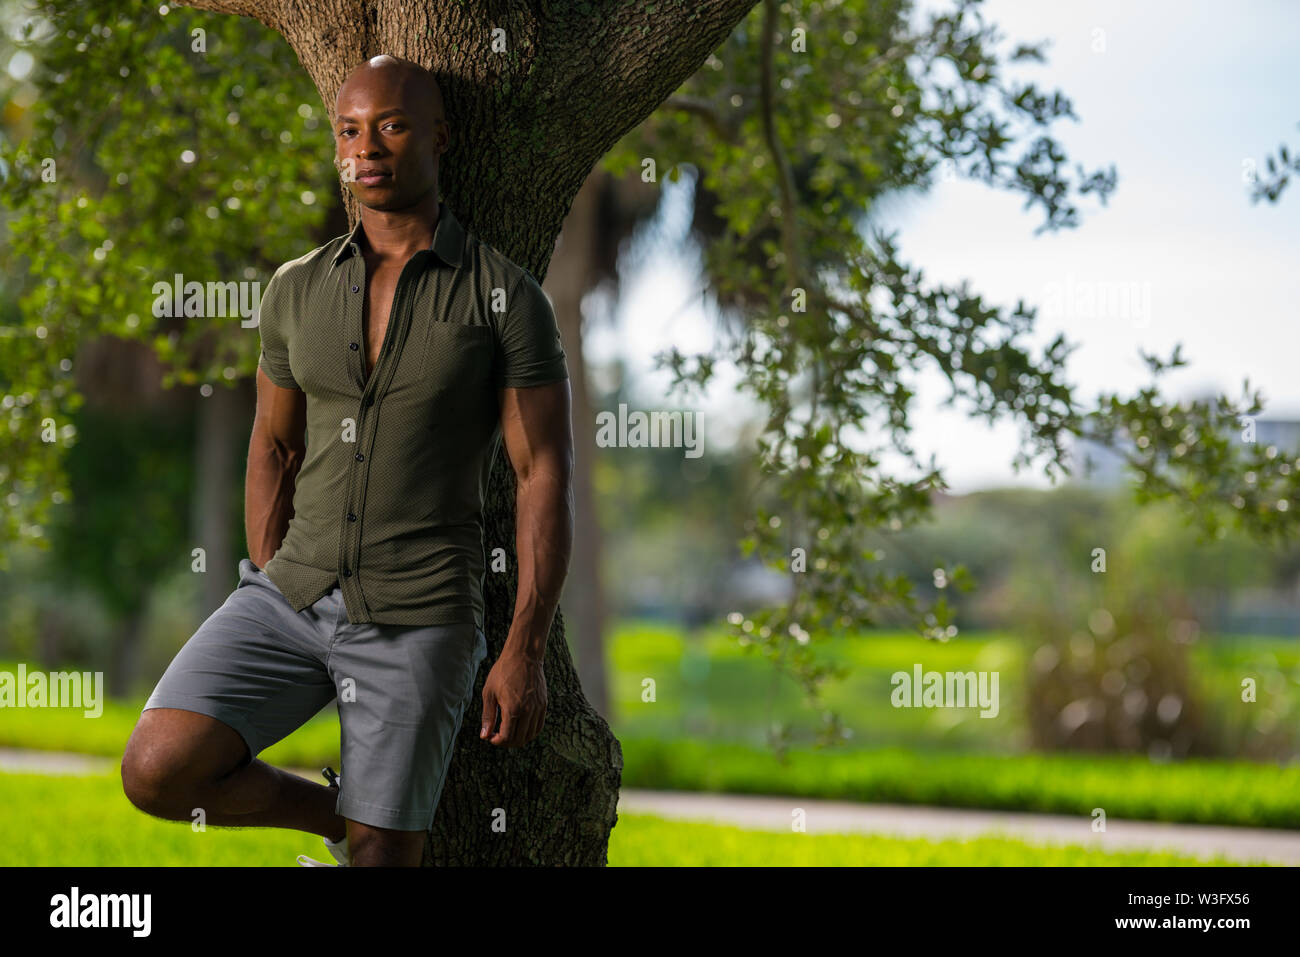 Handsome relaxed man leaning on a tree in the park. African American model wearing a tight shirt showing off muscles - Stock Image